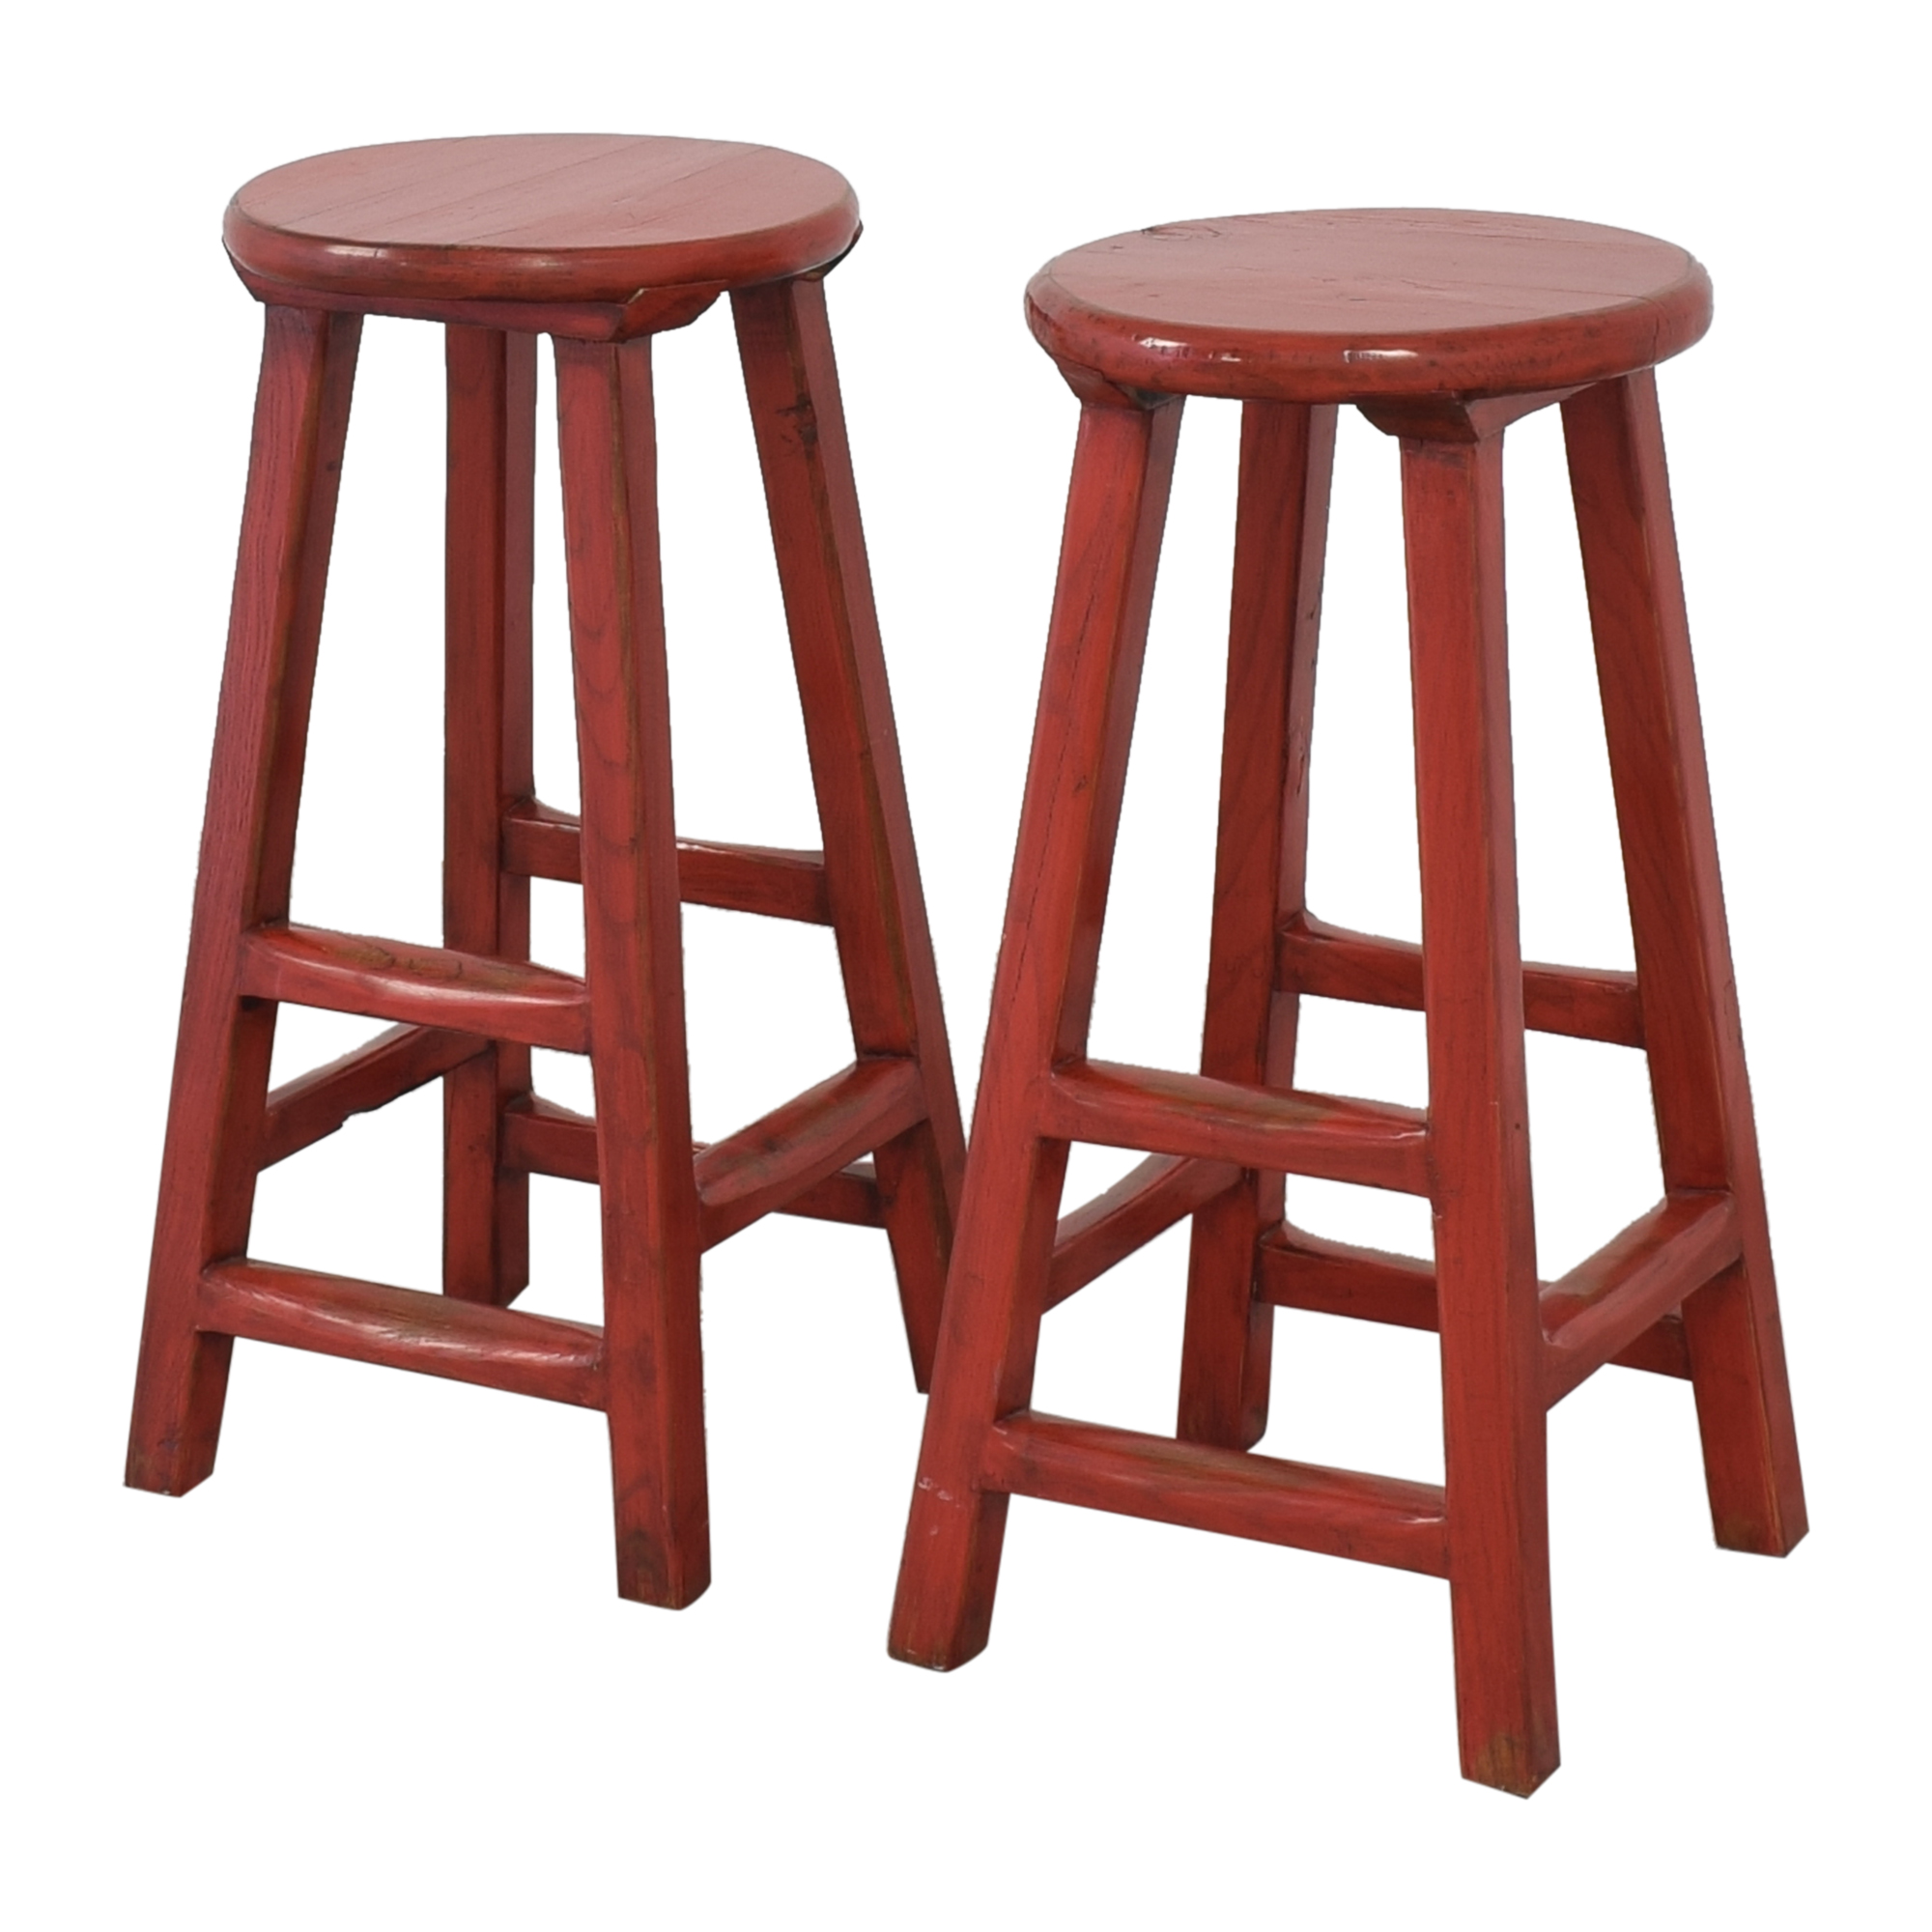 buy  Sturdy Kitchen Counter Stools online